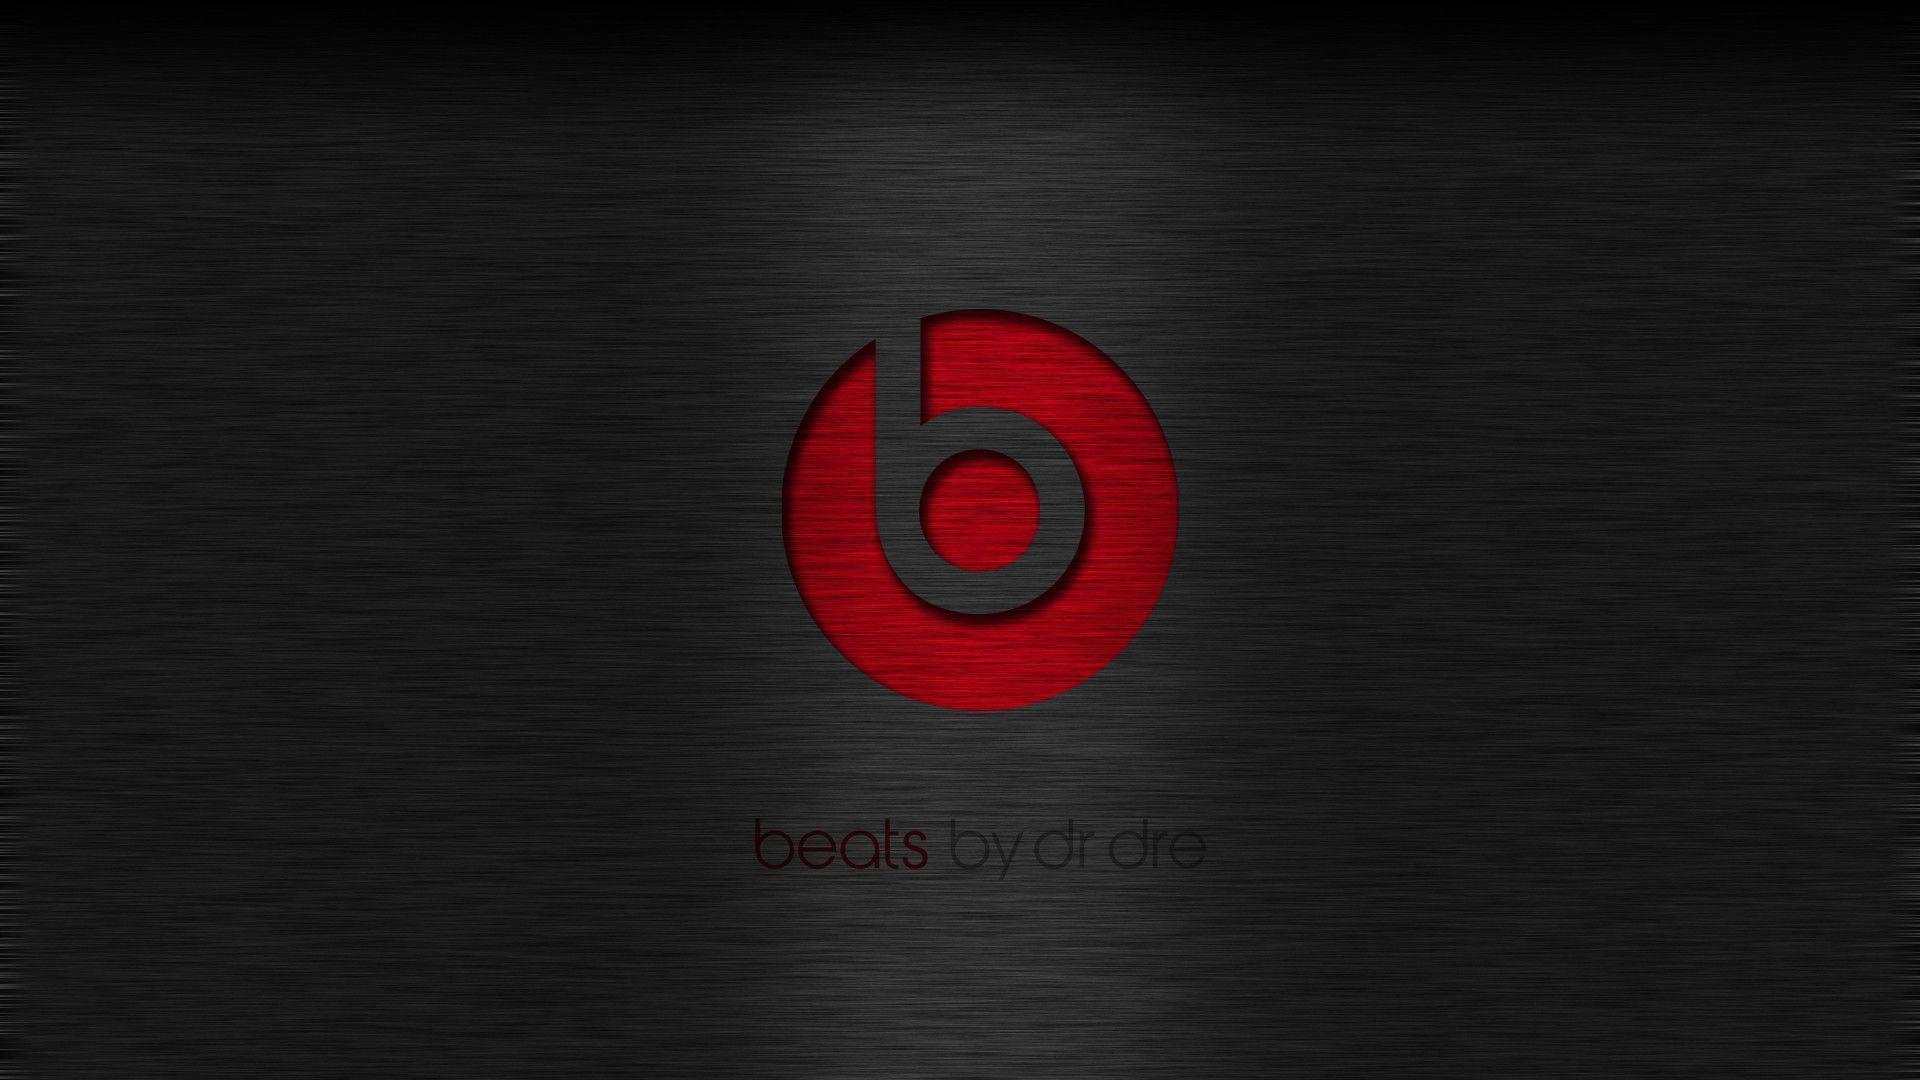 Beats By Dre Images Wallpaper HD - dlwallhd.